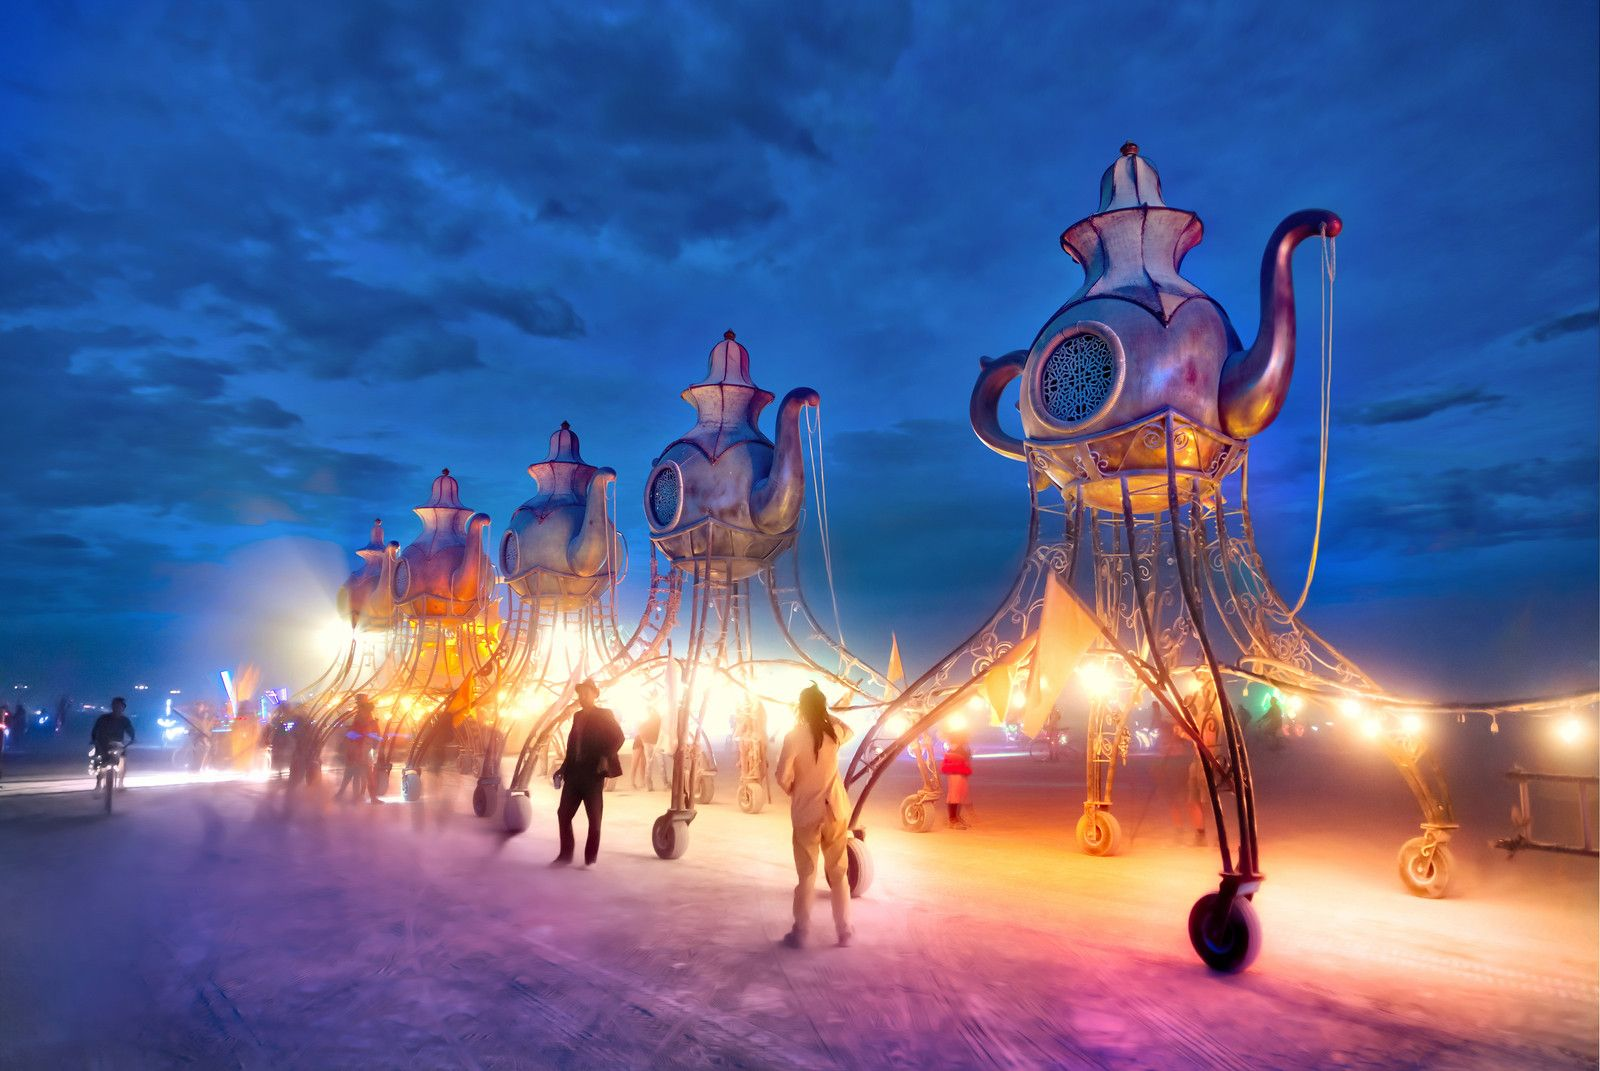 Image result for stuckincustoms.com burning man